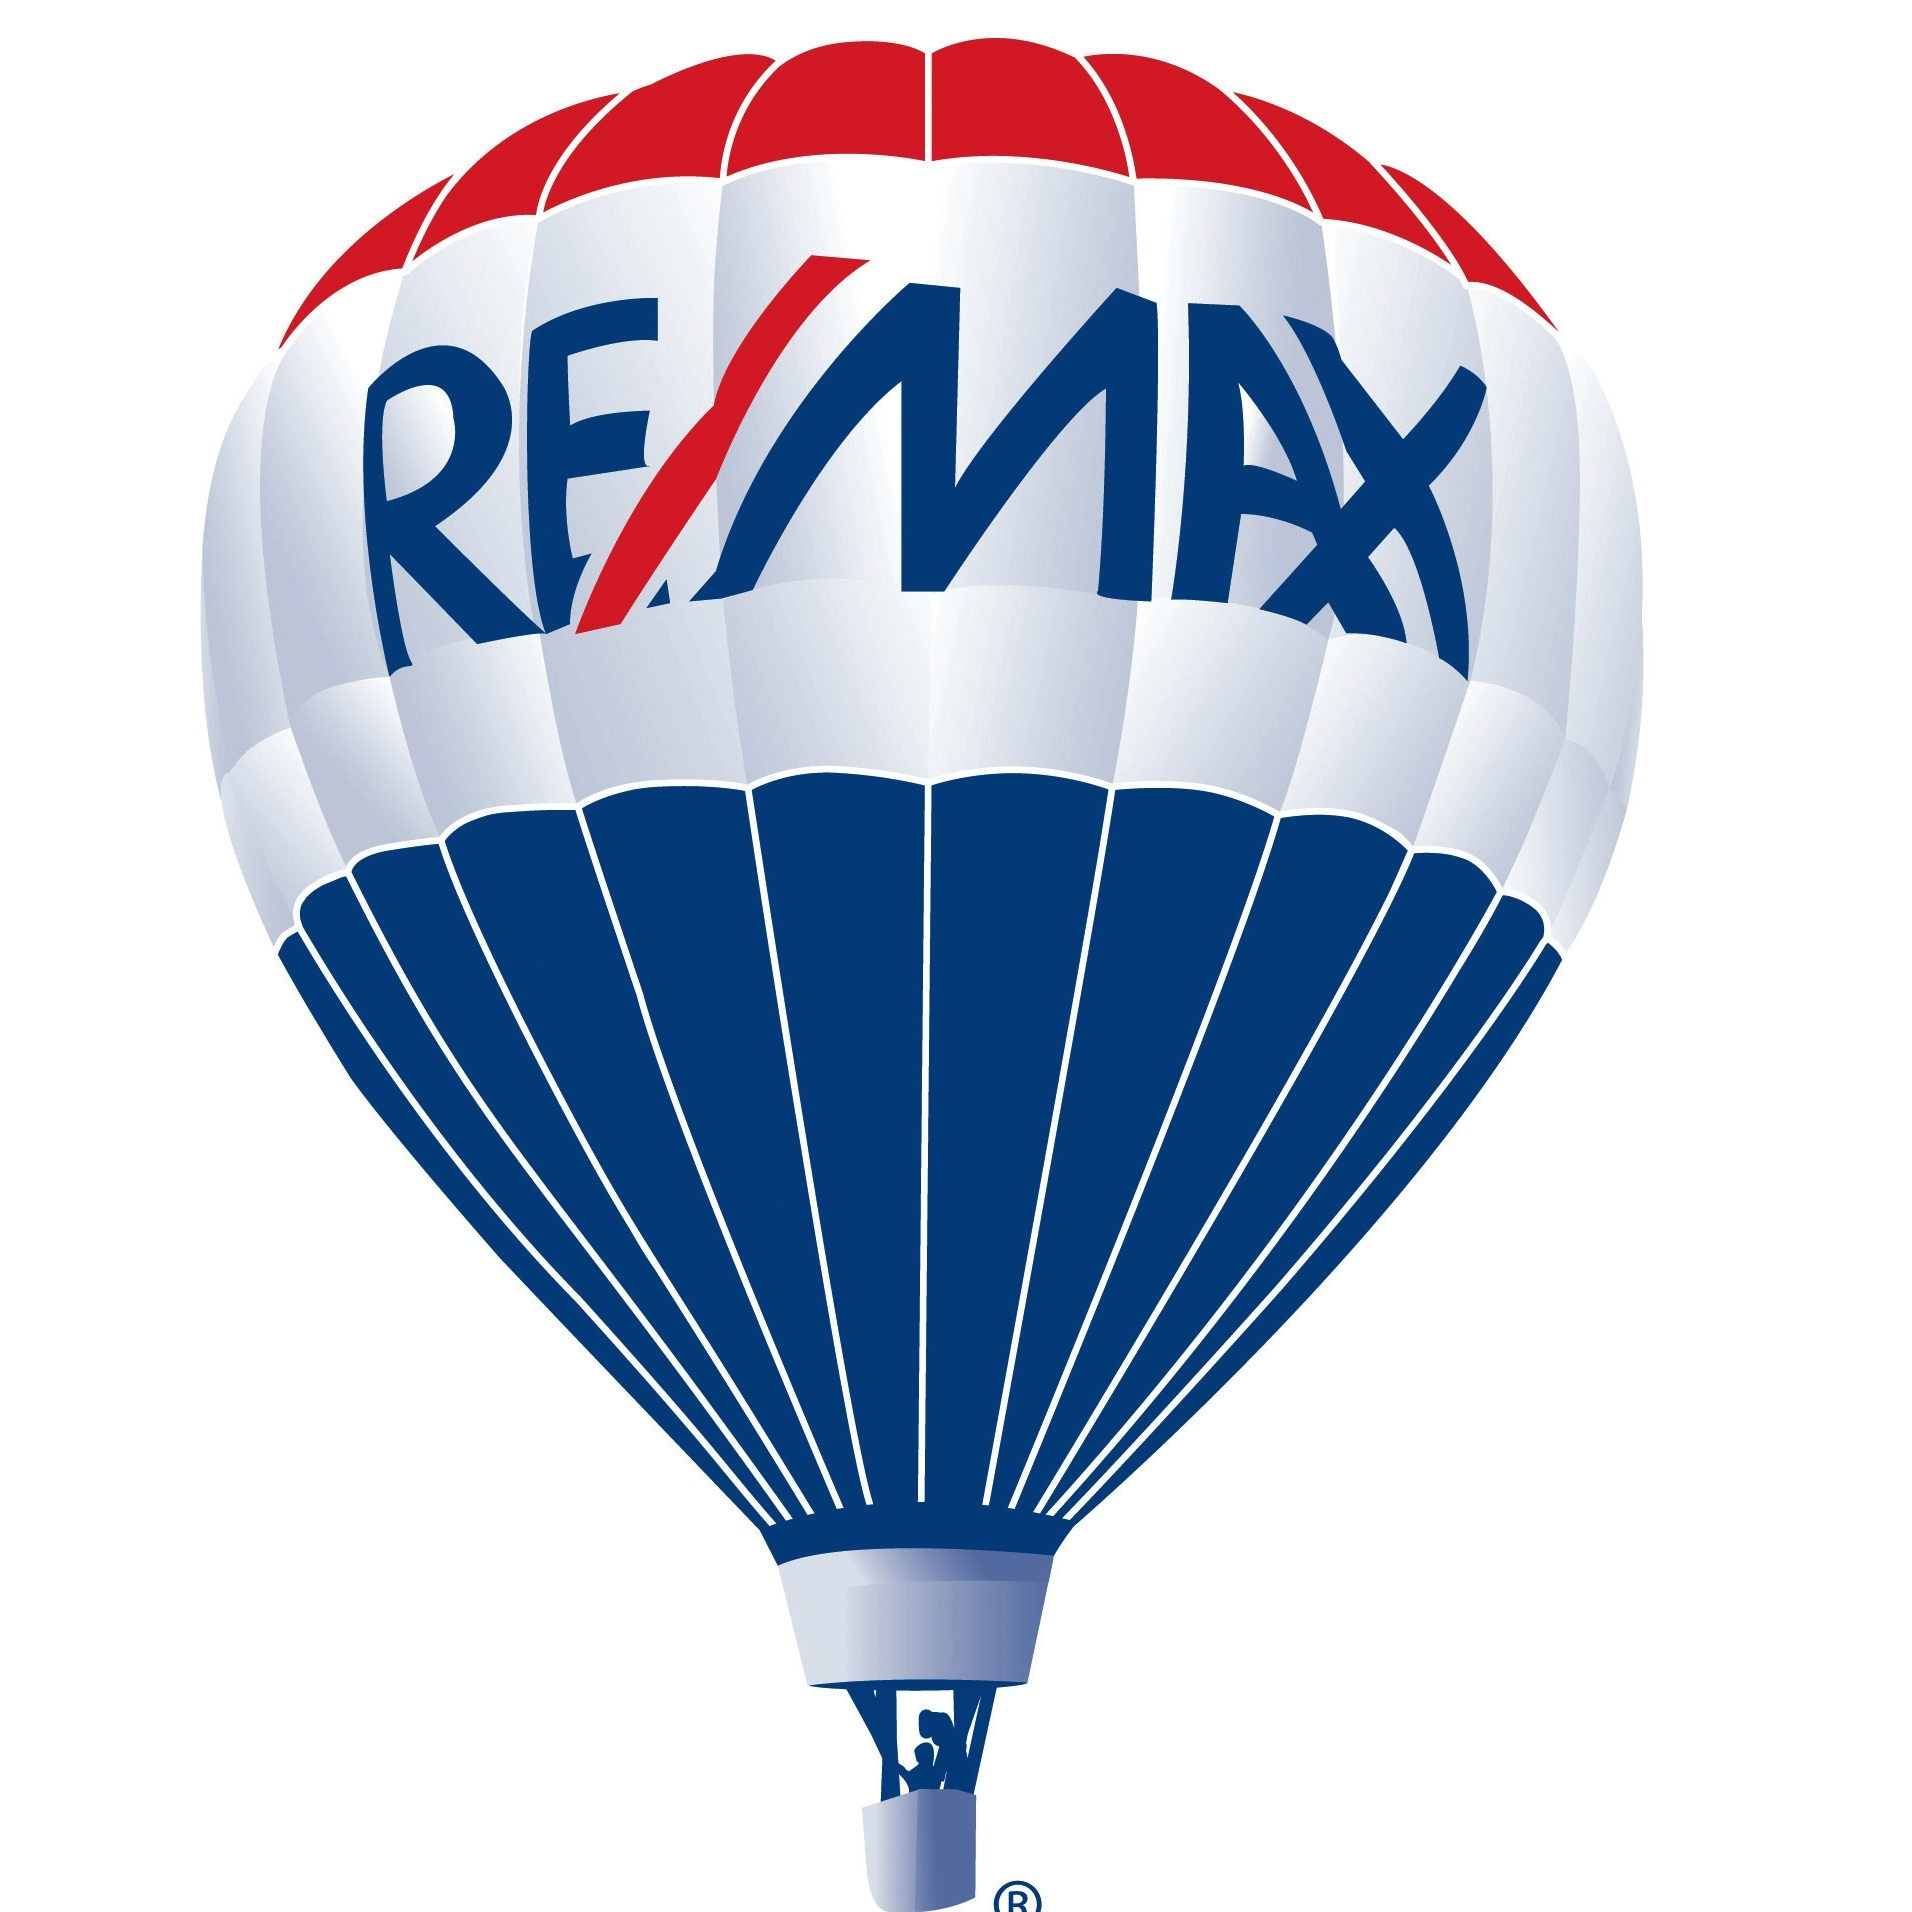 RE/MAX - аудит пакета франшизы